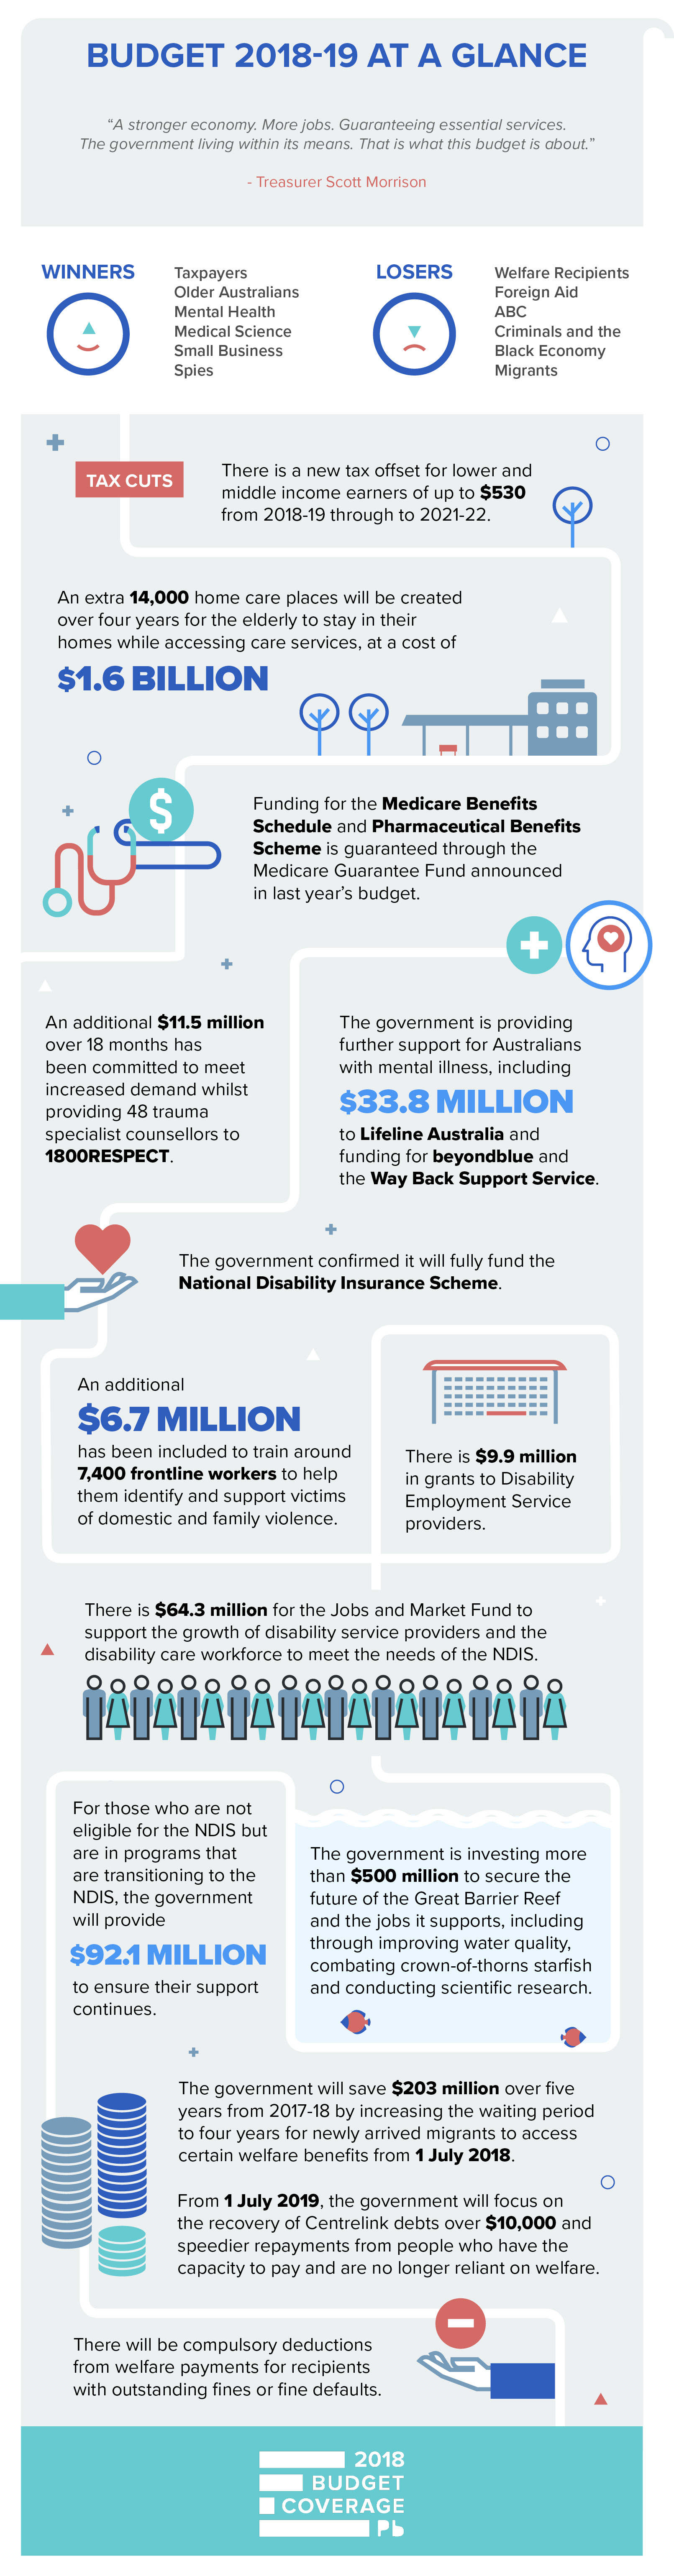 Federal budget infographic